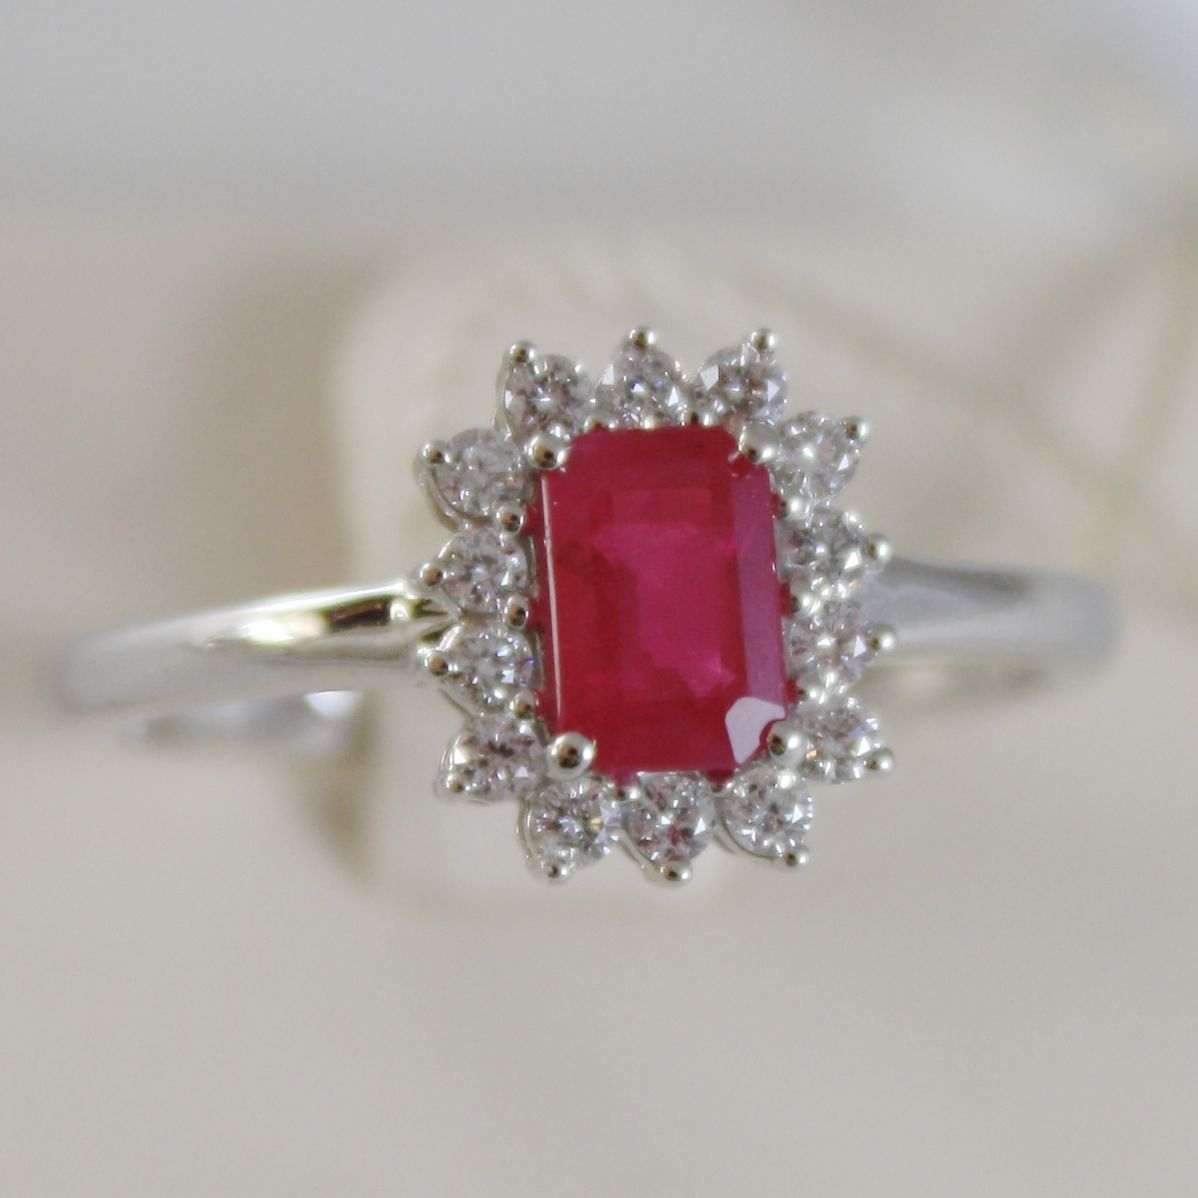 18K WHITE GOLD FLOWER RING, DIAMOND & EMERALD RED RUBY, 0.91 CT, MADE IN ITALY